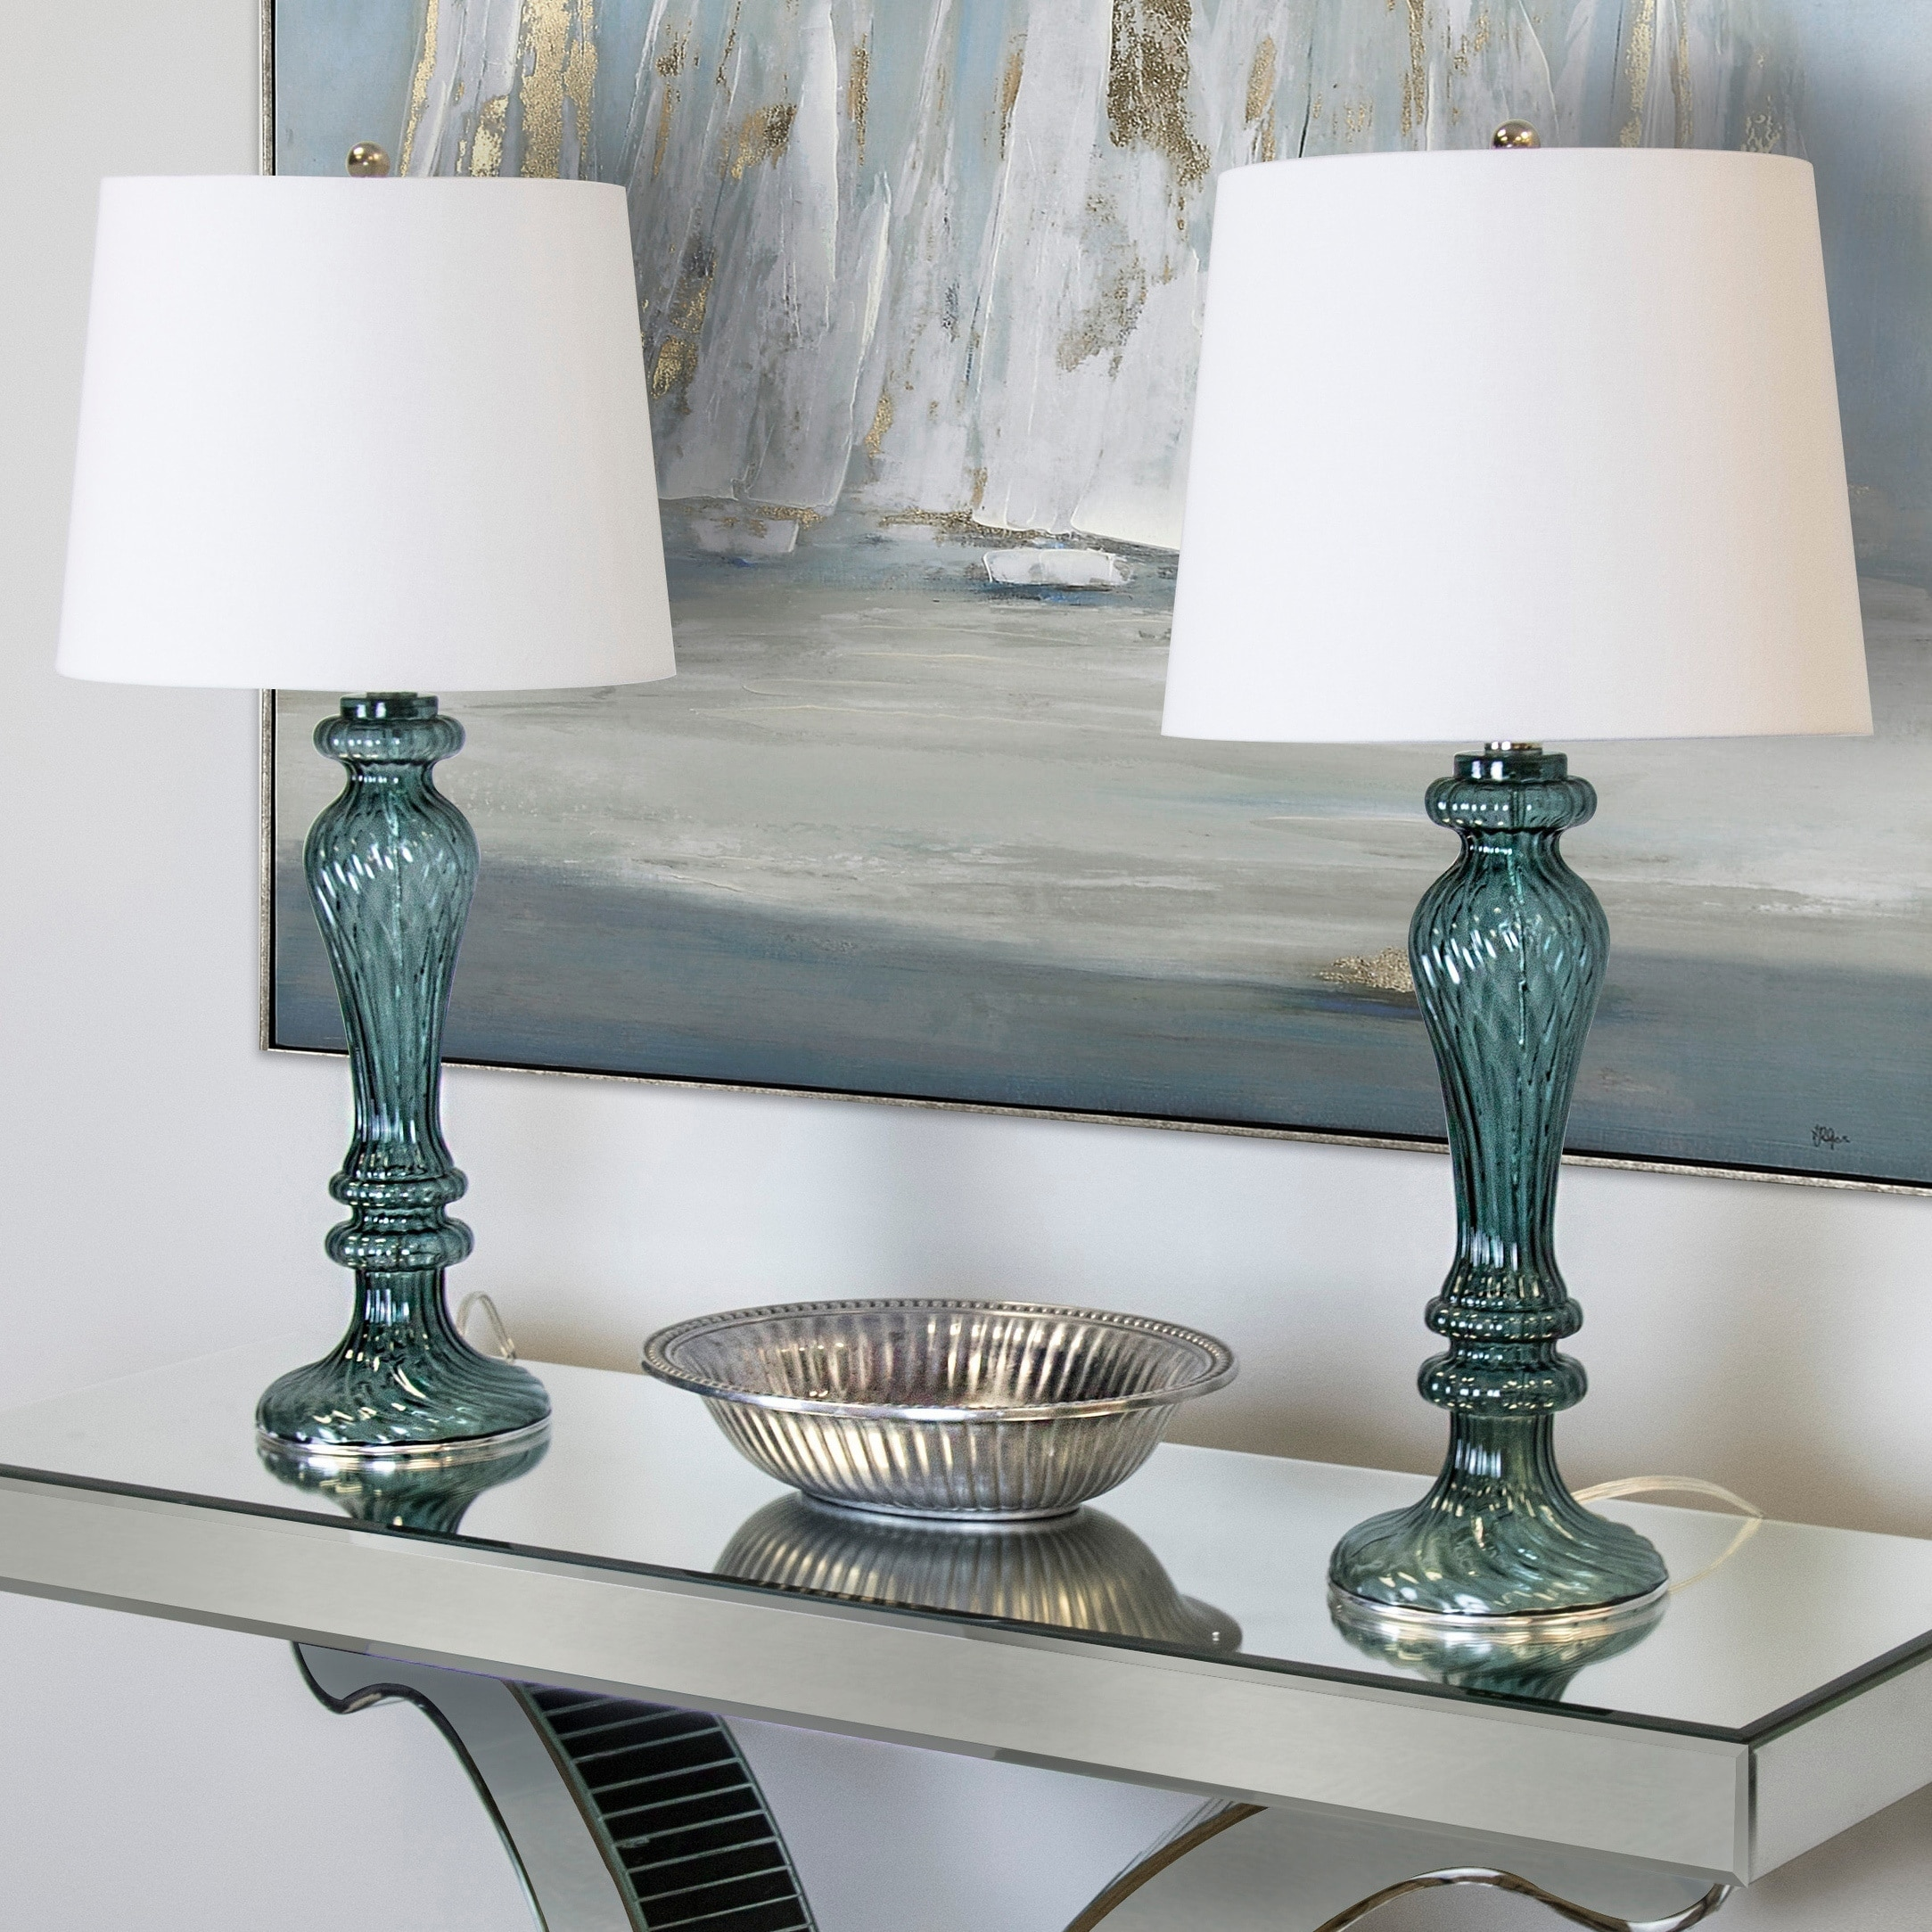 Shop Black Friday Deals On Porch Den Regina Turquoise Glass 25 5 Inch Table Lamp W White Linen Drum Shade On Sale Overstock 29197610